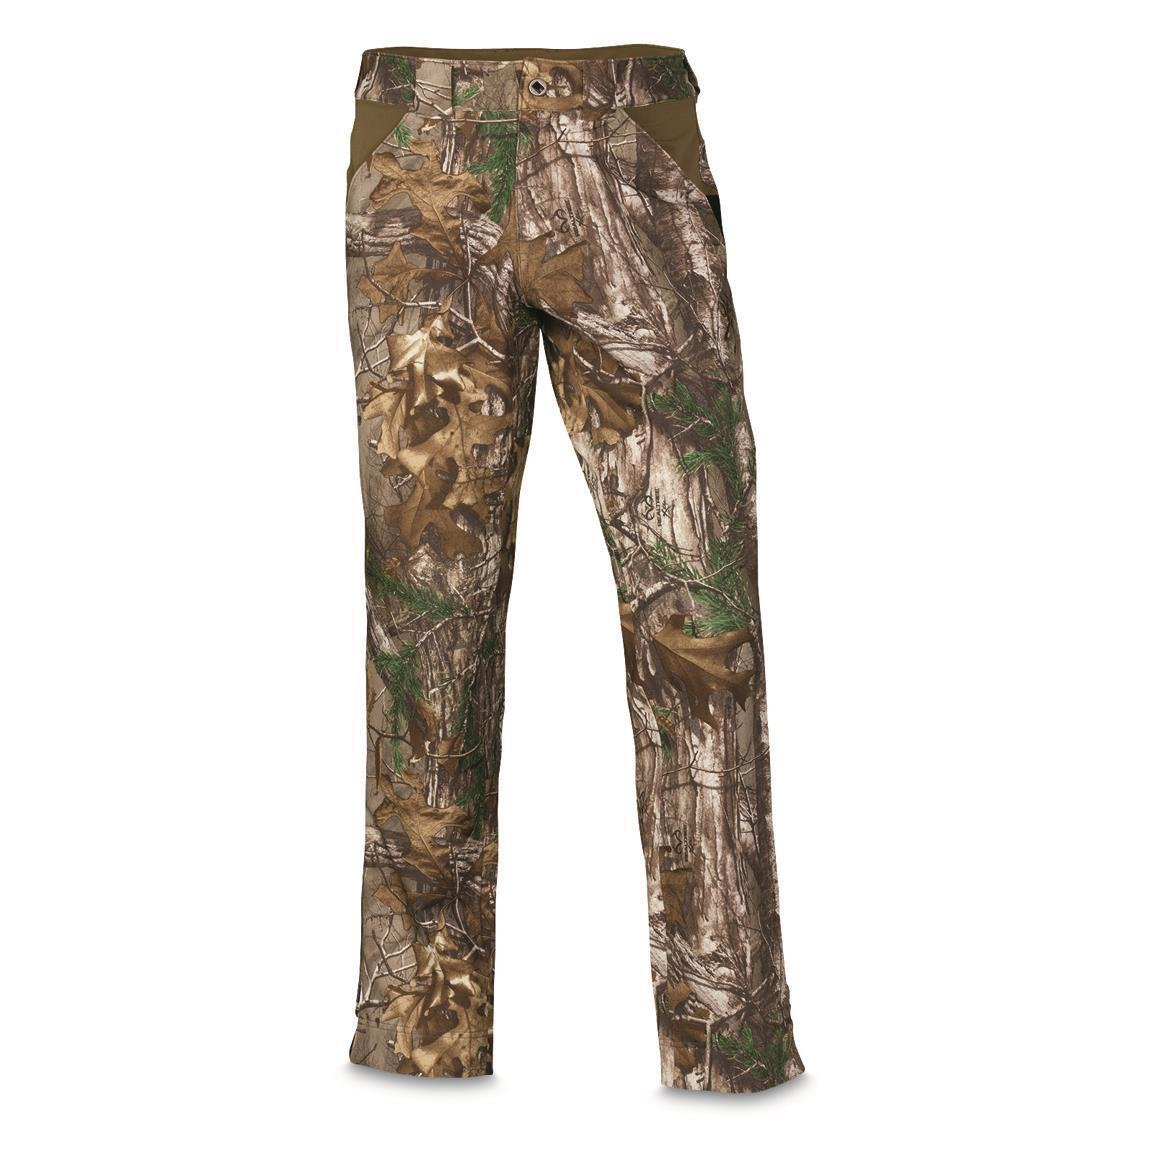 NEW BROWNING Men's Hell's Canyon Mercury Hunting Pants Realtree Xtra Camo 38 48